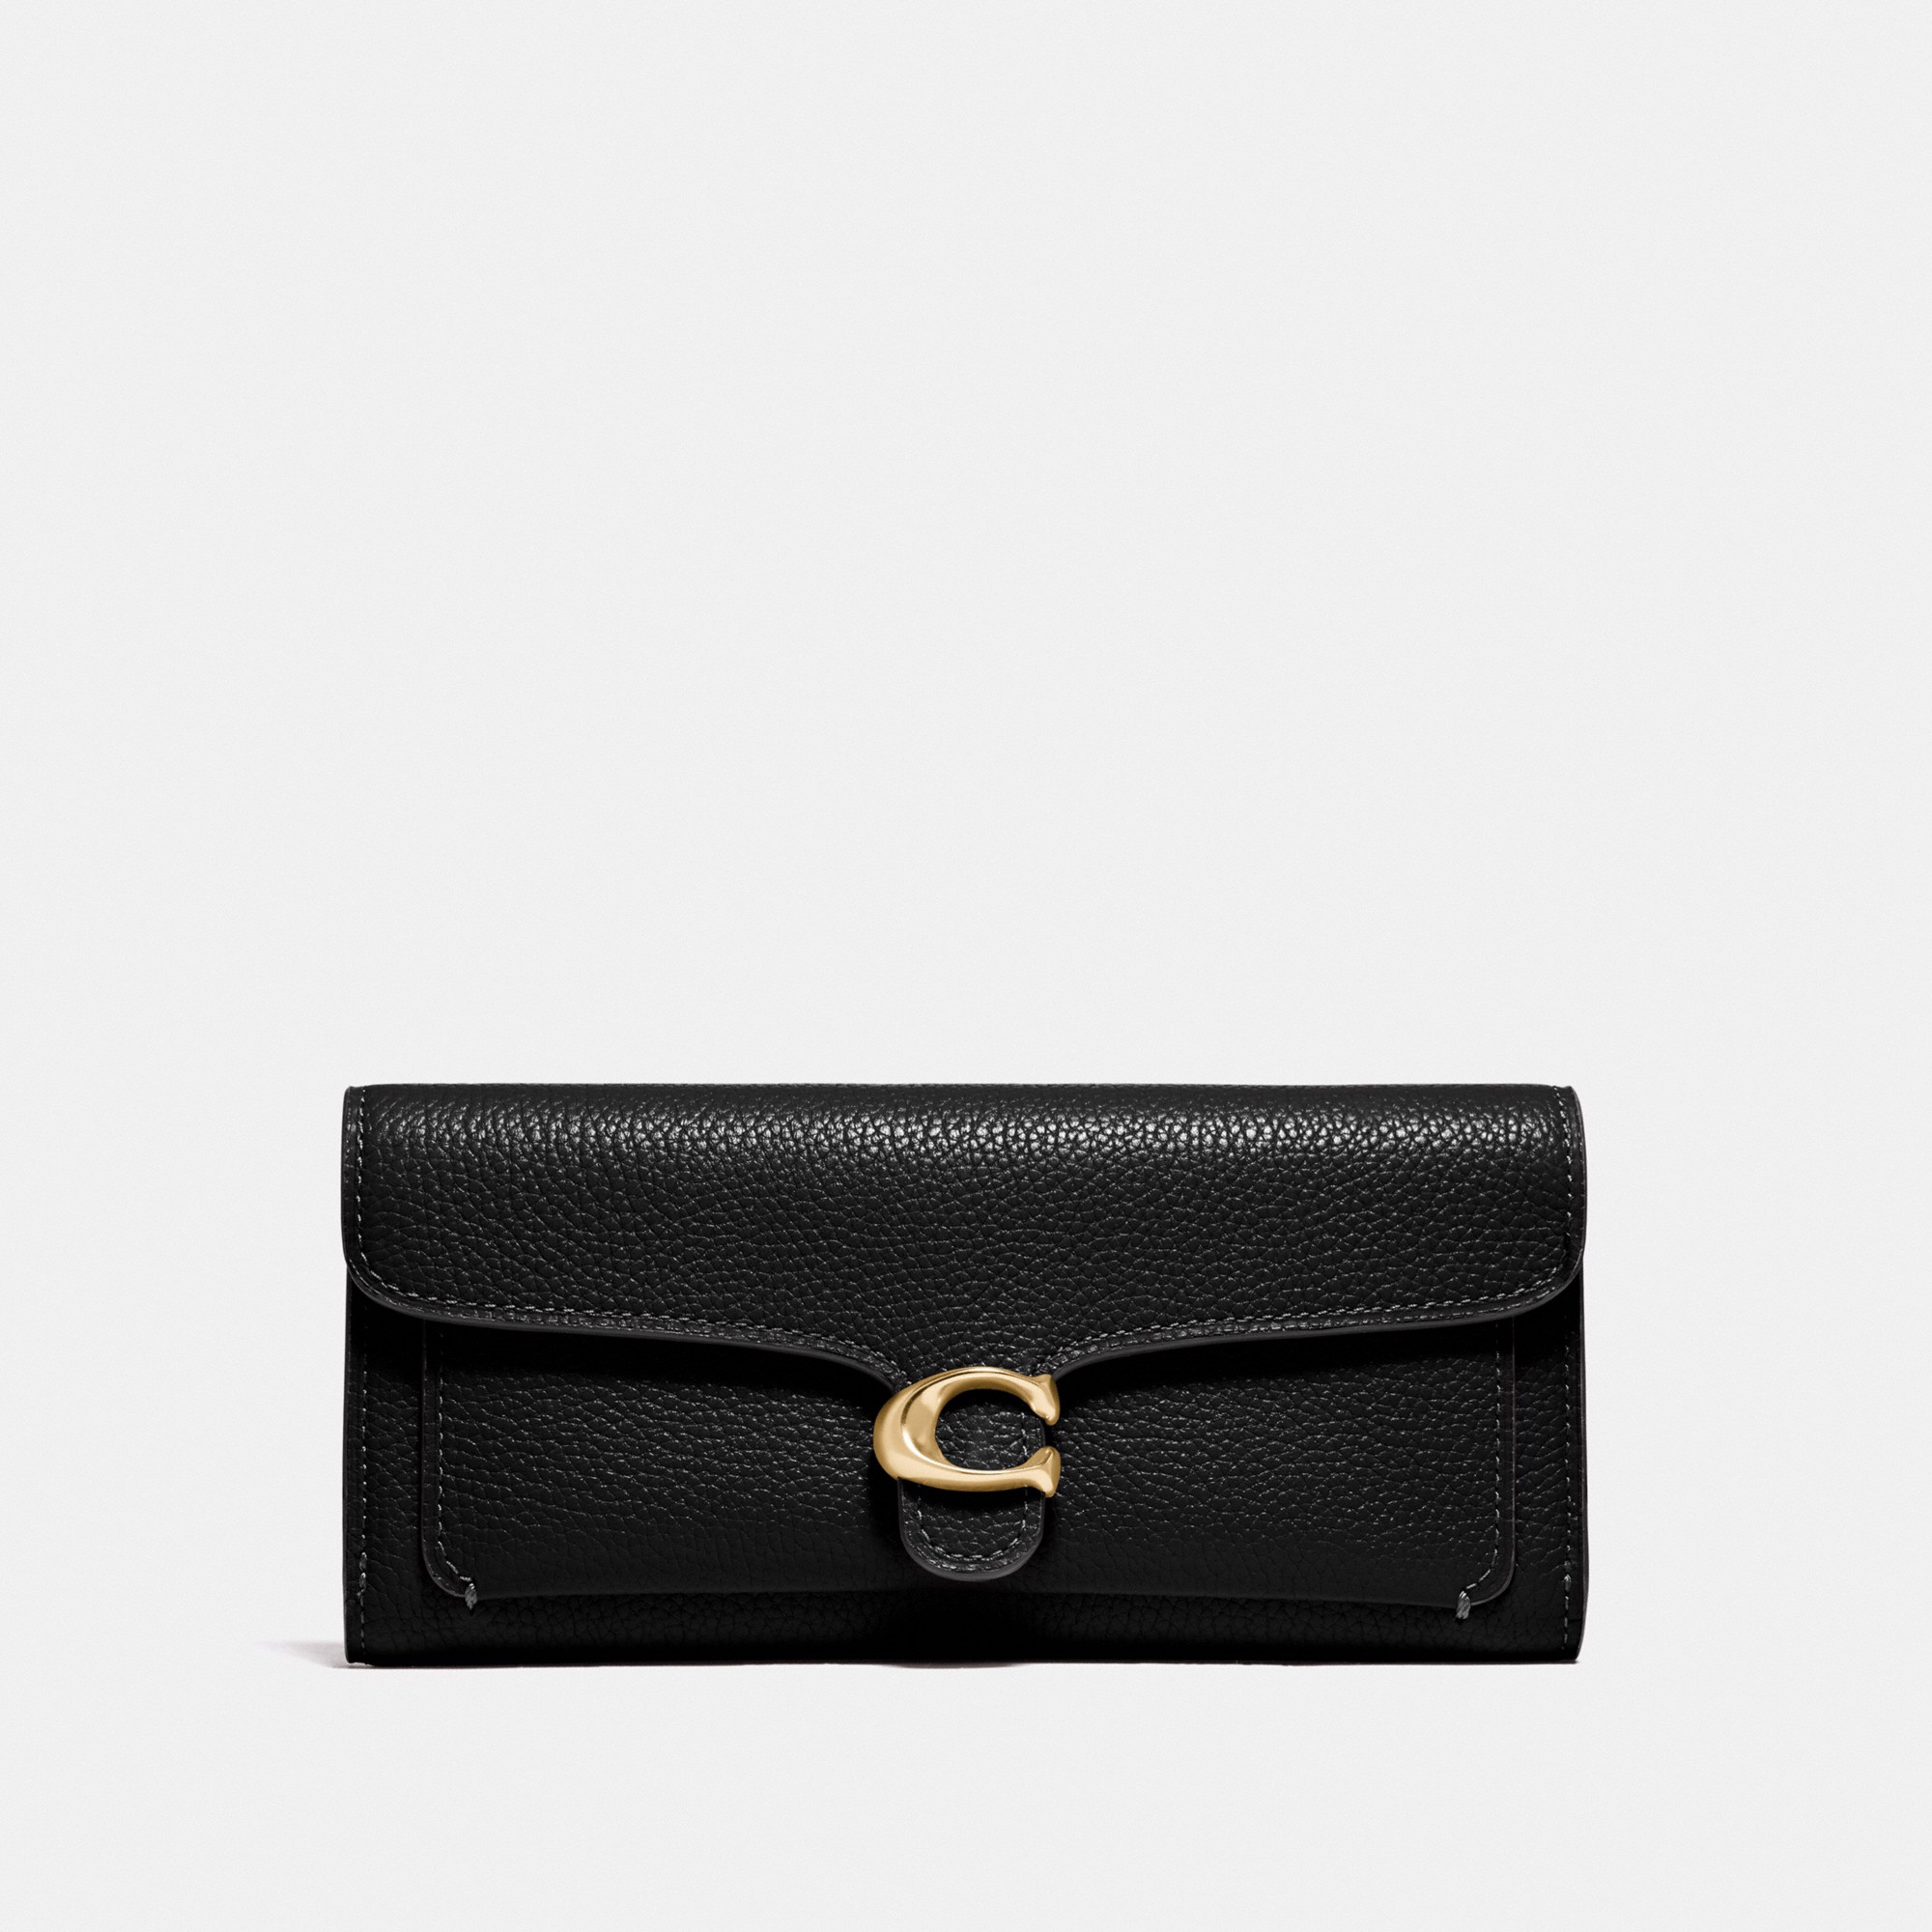 Coach Tabby Long Wallet 'Black/Gold'